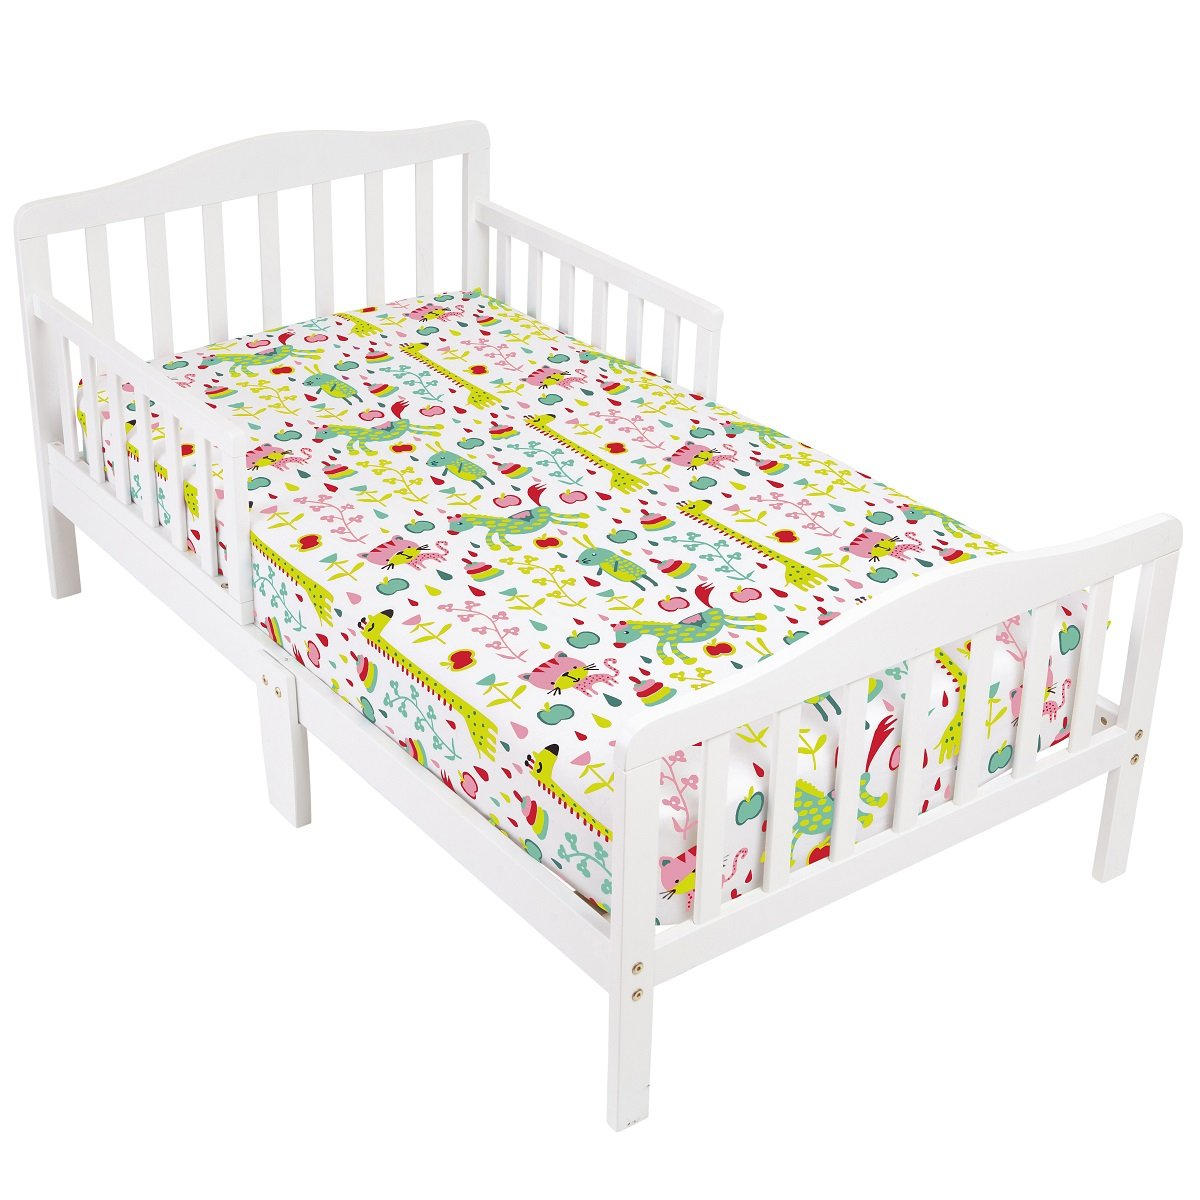 Mellanni Toddler 2 Fitted Sheets Animal-Print and Pink - Fits Baby Crib Too - Super Soft Kids Bedding (Animal Print and Pink)